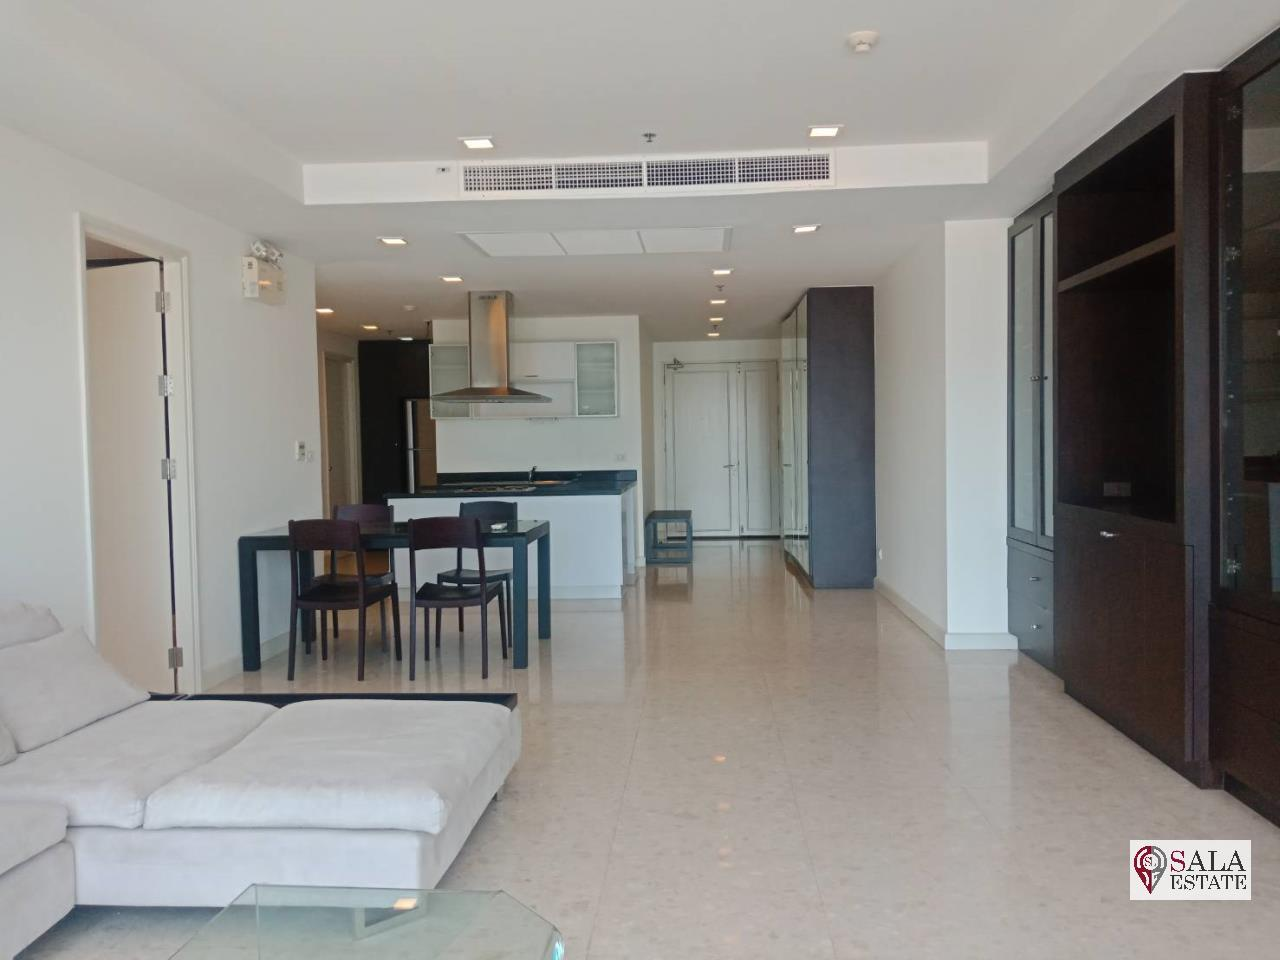 SALA ESTATE Agency's NUSASIRI – BTS EKKAMAI, 3BEDROOMS 2BATHROOMS , FULLY FURNISHED, CITY VIEW 1